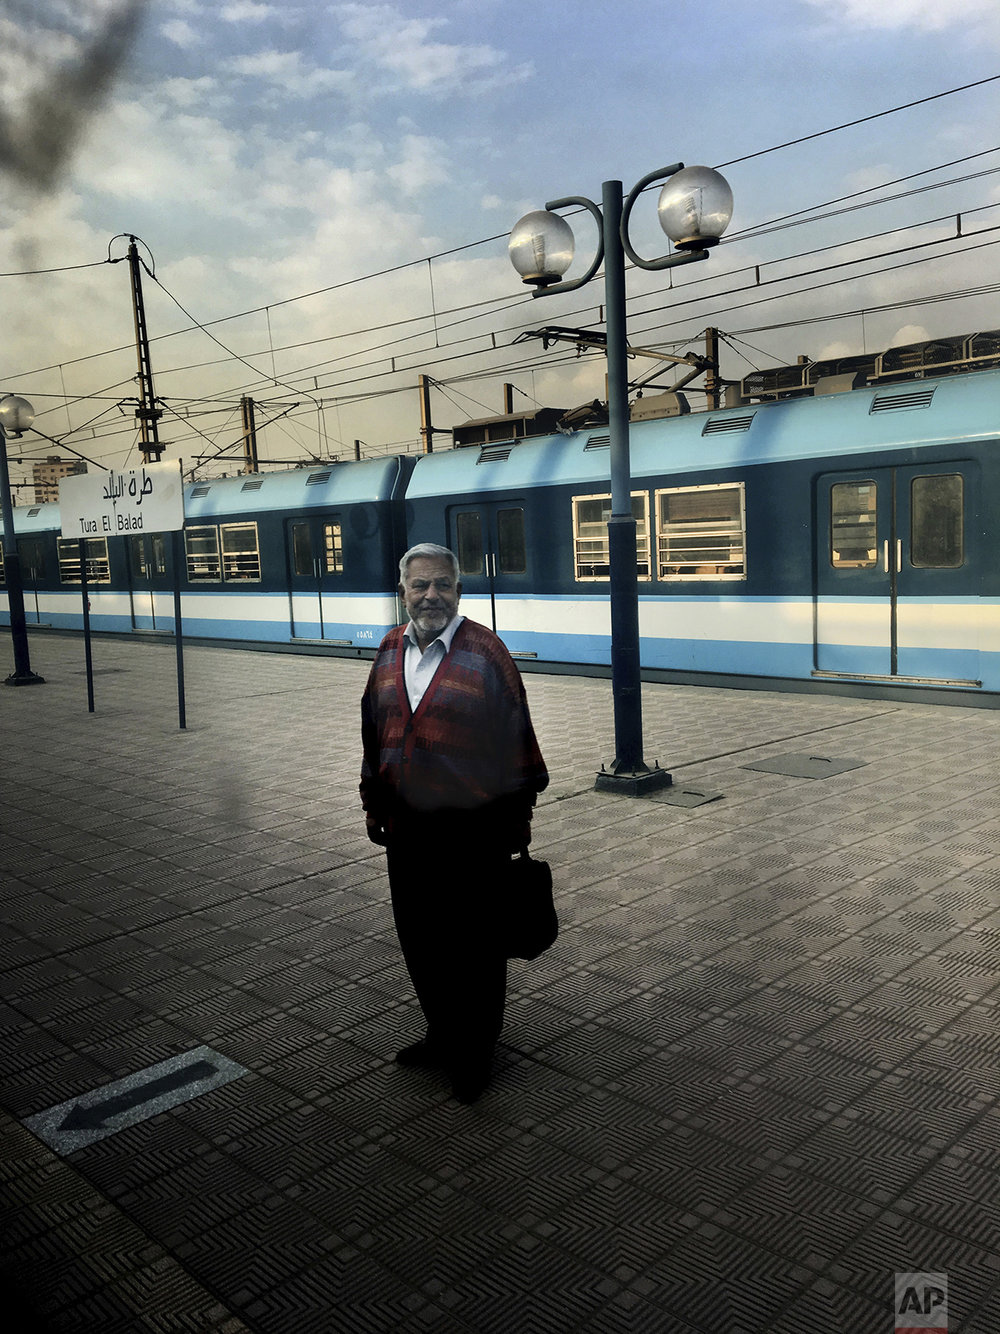 In this Feb. 1, 2017 photo, a man waits for a train at Tura El Balad metro station, in Cairo, Egypt. (AP Photo/Nariman El-Mofty)